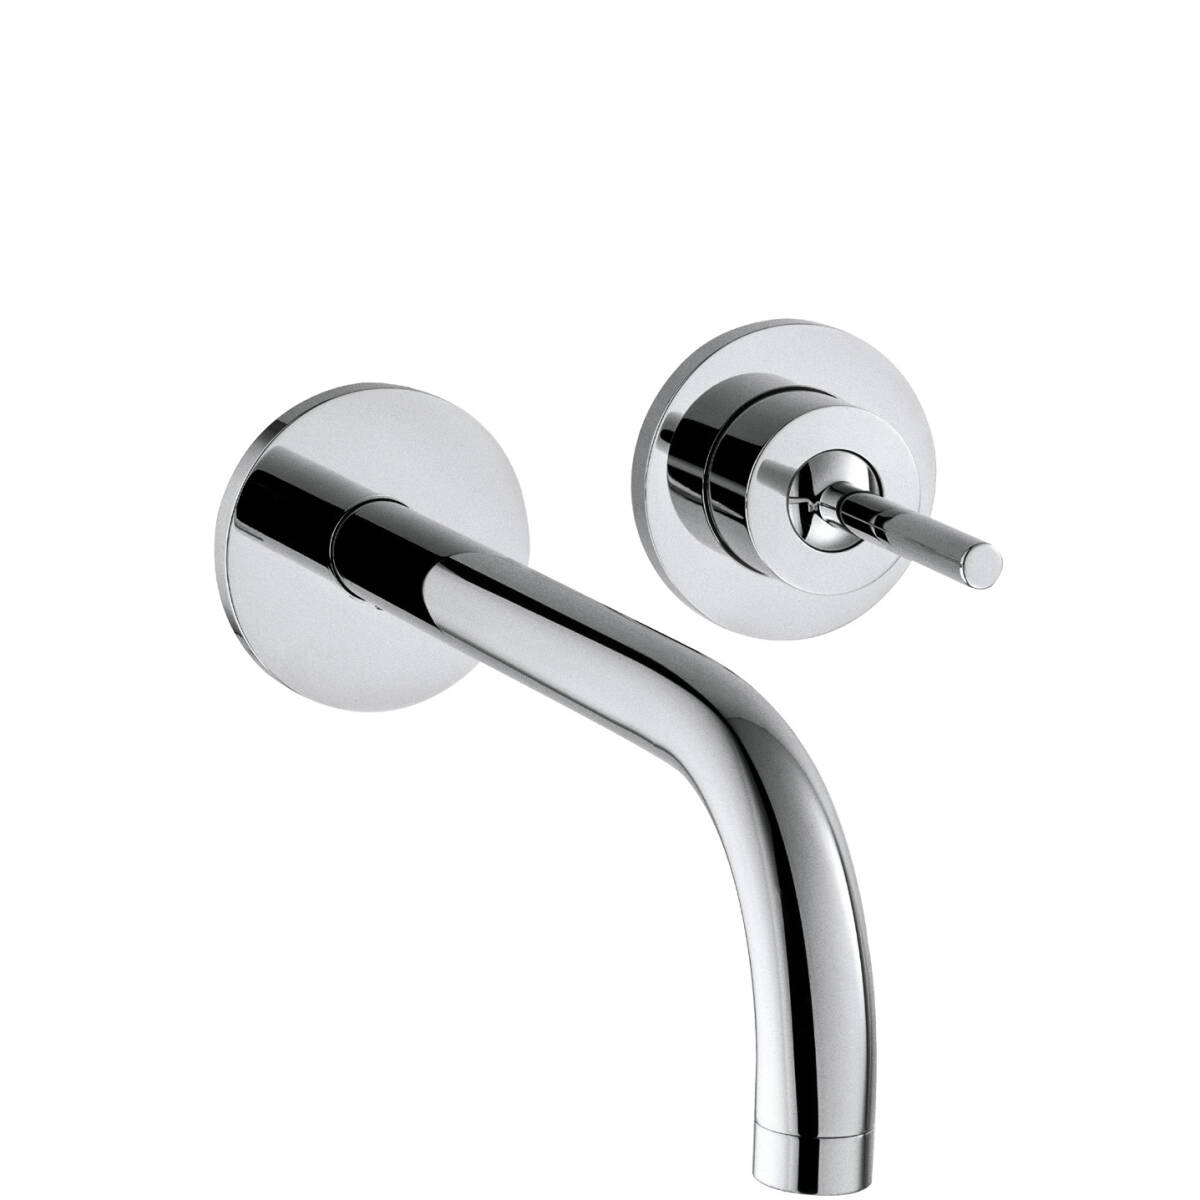 Single lever basin mixer for concealed installation wall-mounted with spout 225 mm and escutcheons, Chrome, 38116000